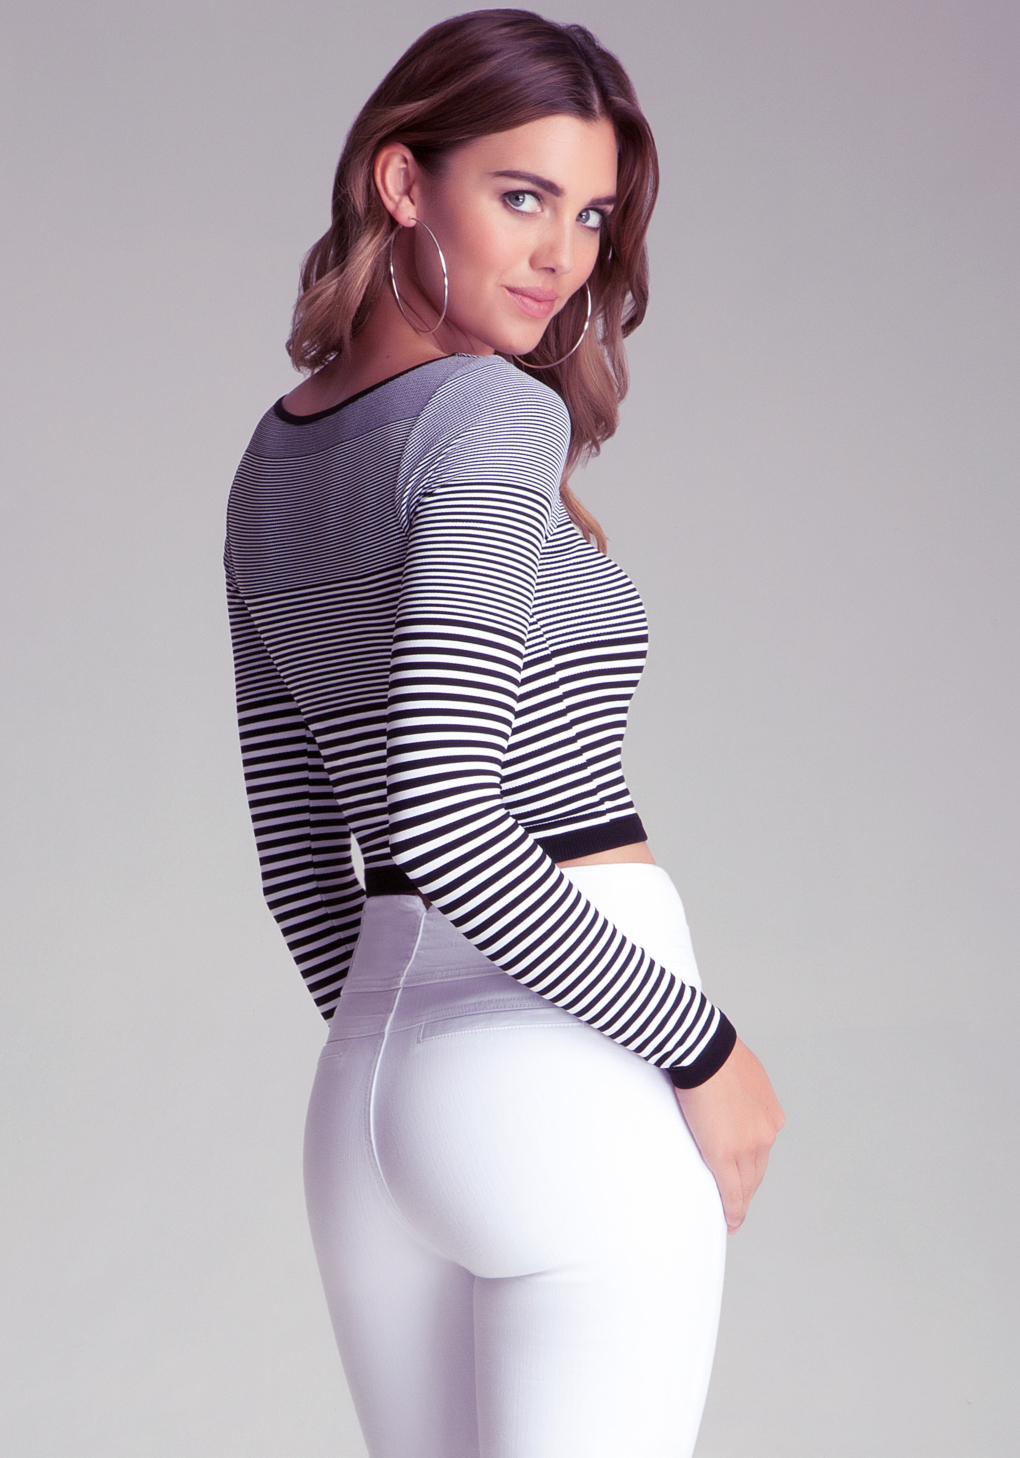 New Free People Seamless Stretchy Long Sleeve Black /& White Striped Crop Top $48